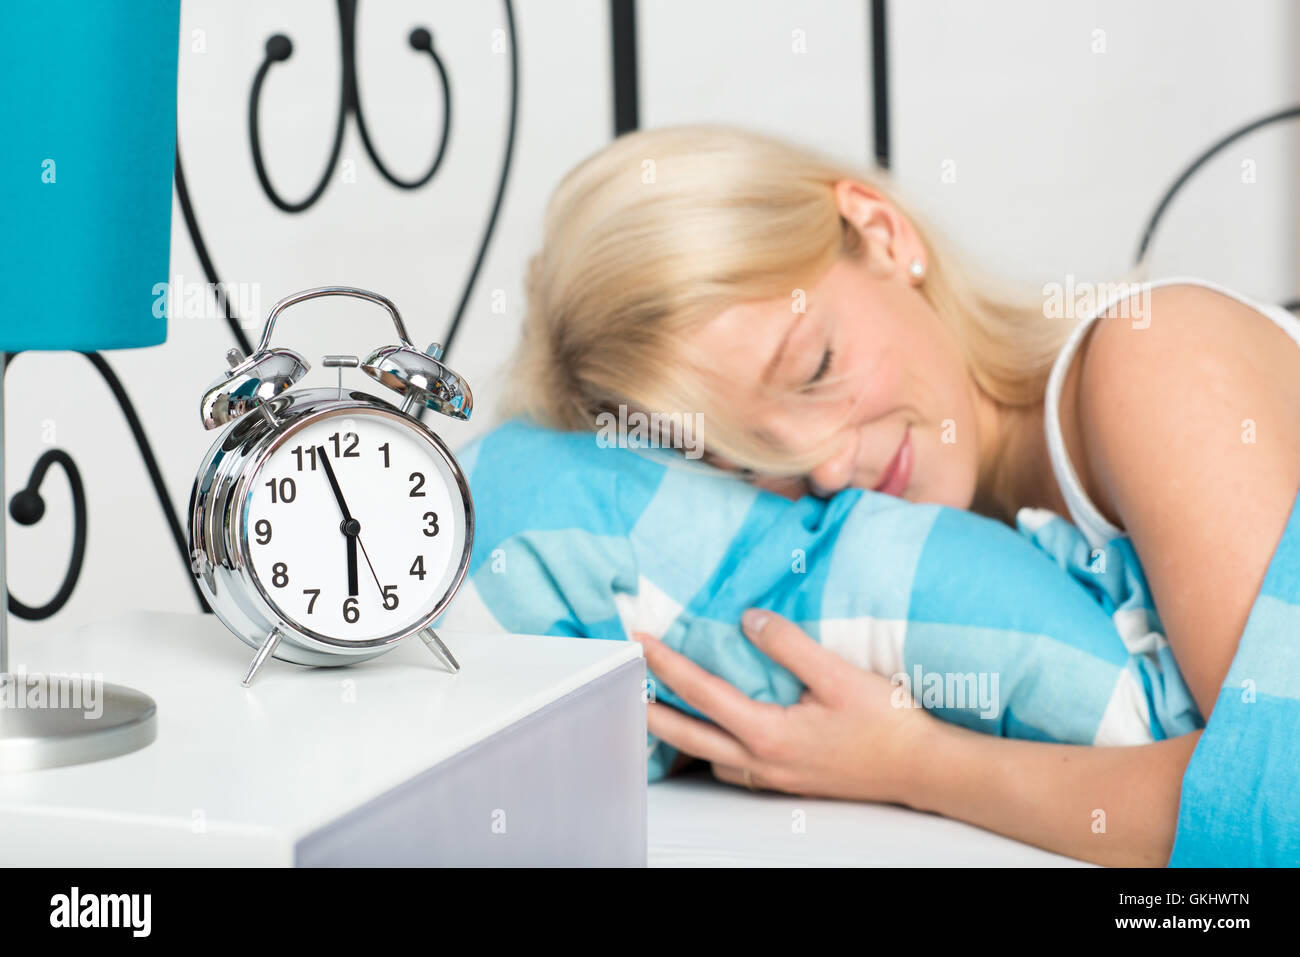 woman bed snug - Stock Image